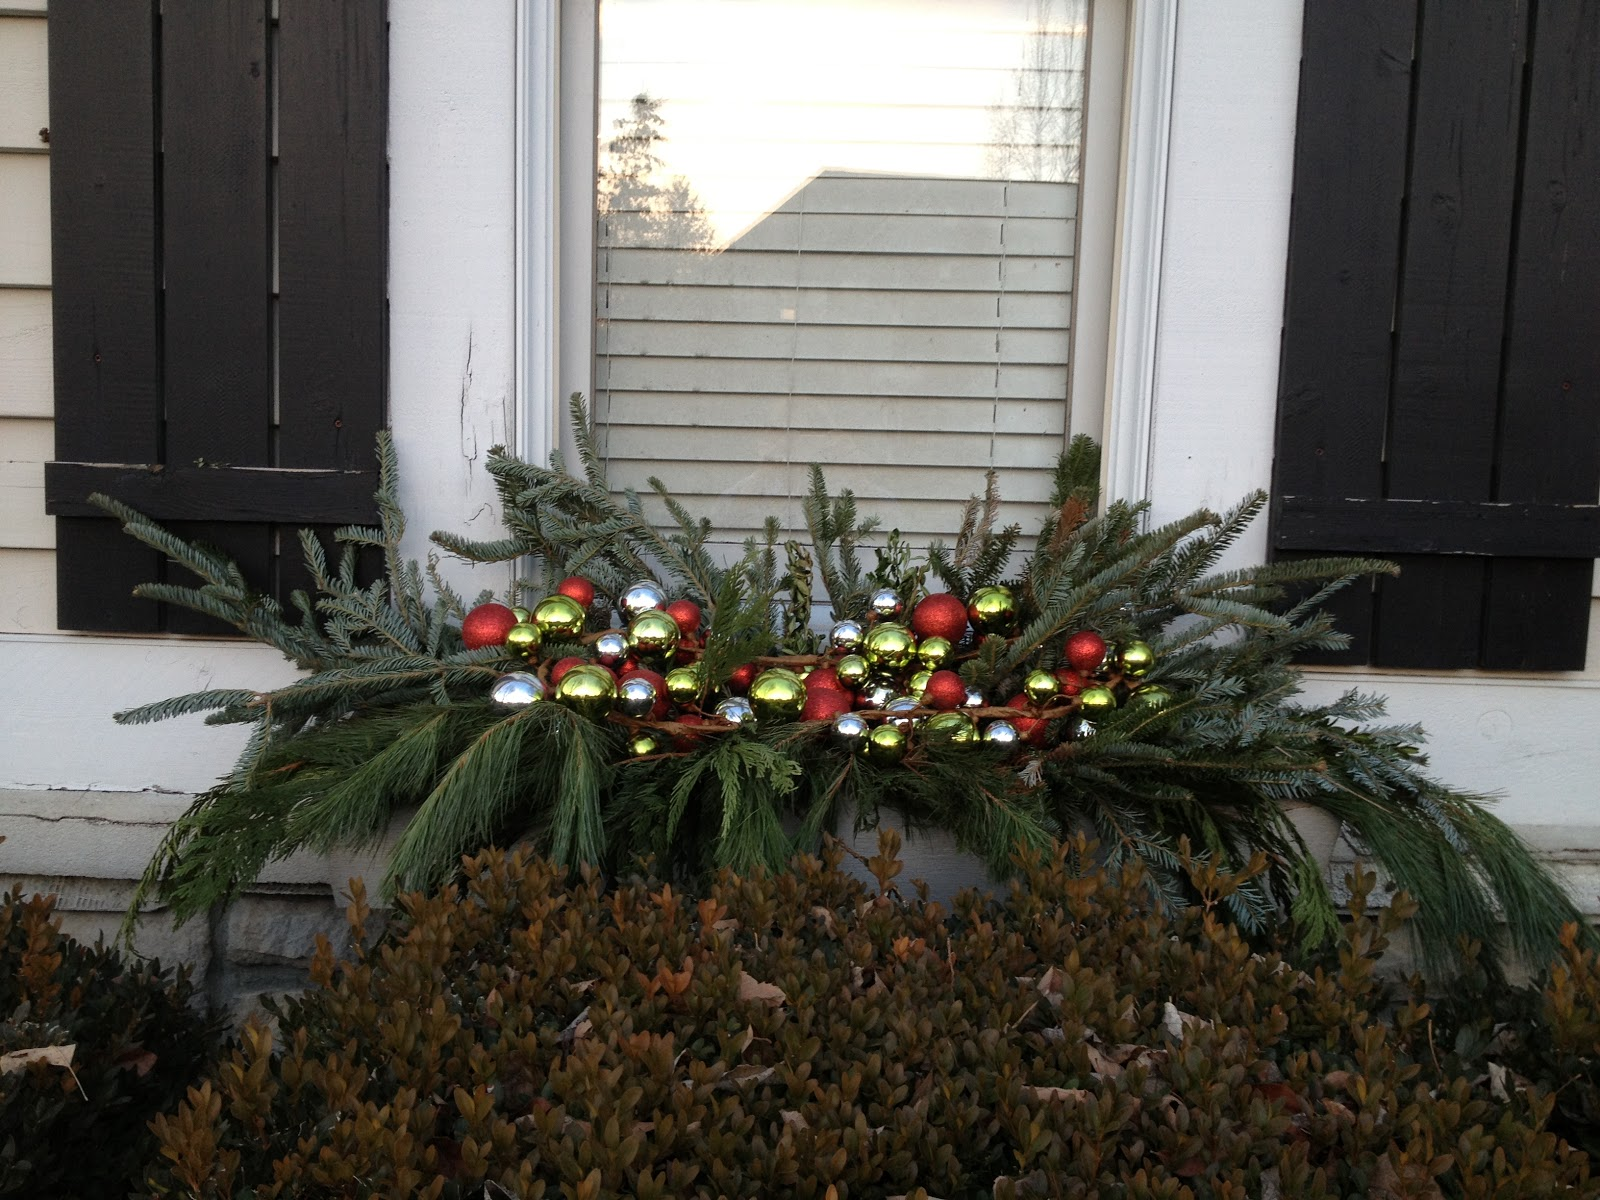 Decor Amore: Christmas Windowbox Decorations